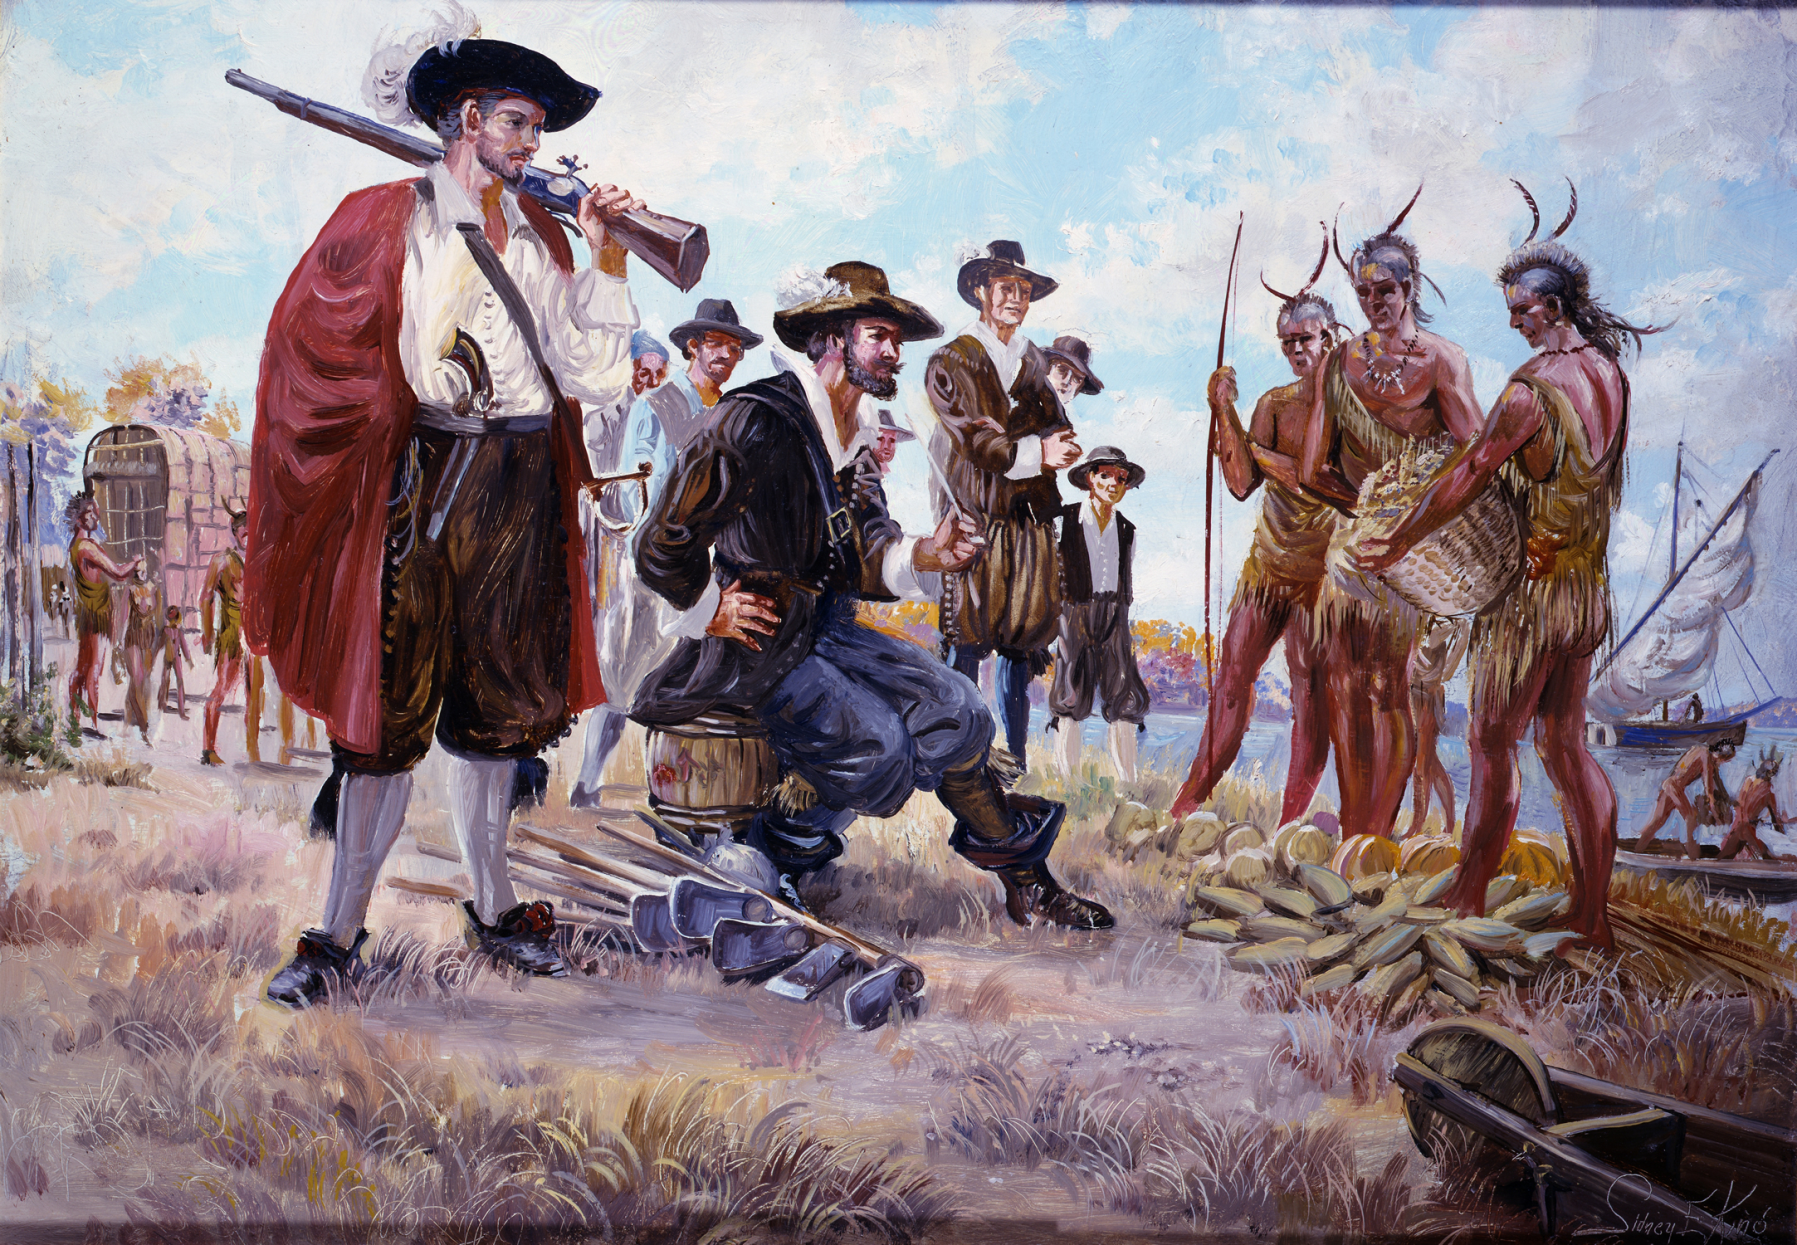 An image showing settlers and native Americans trading at Jamestown